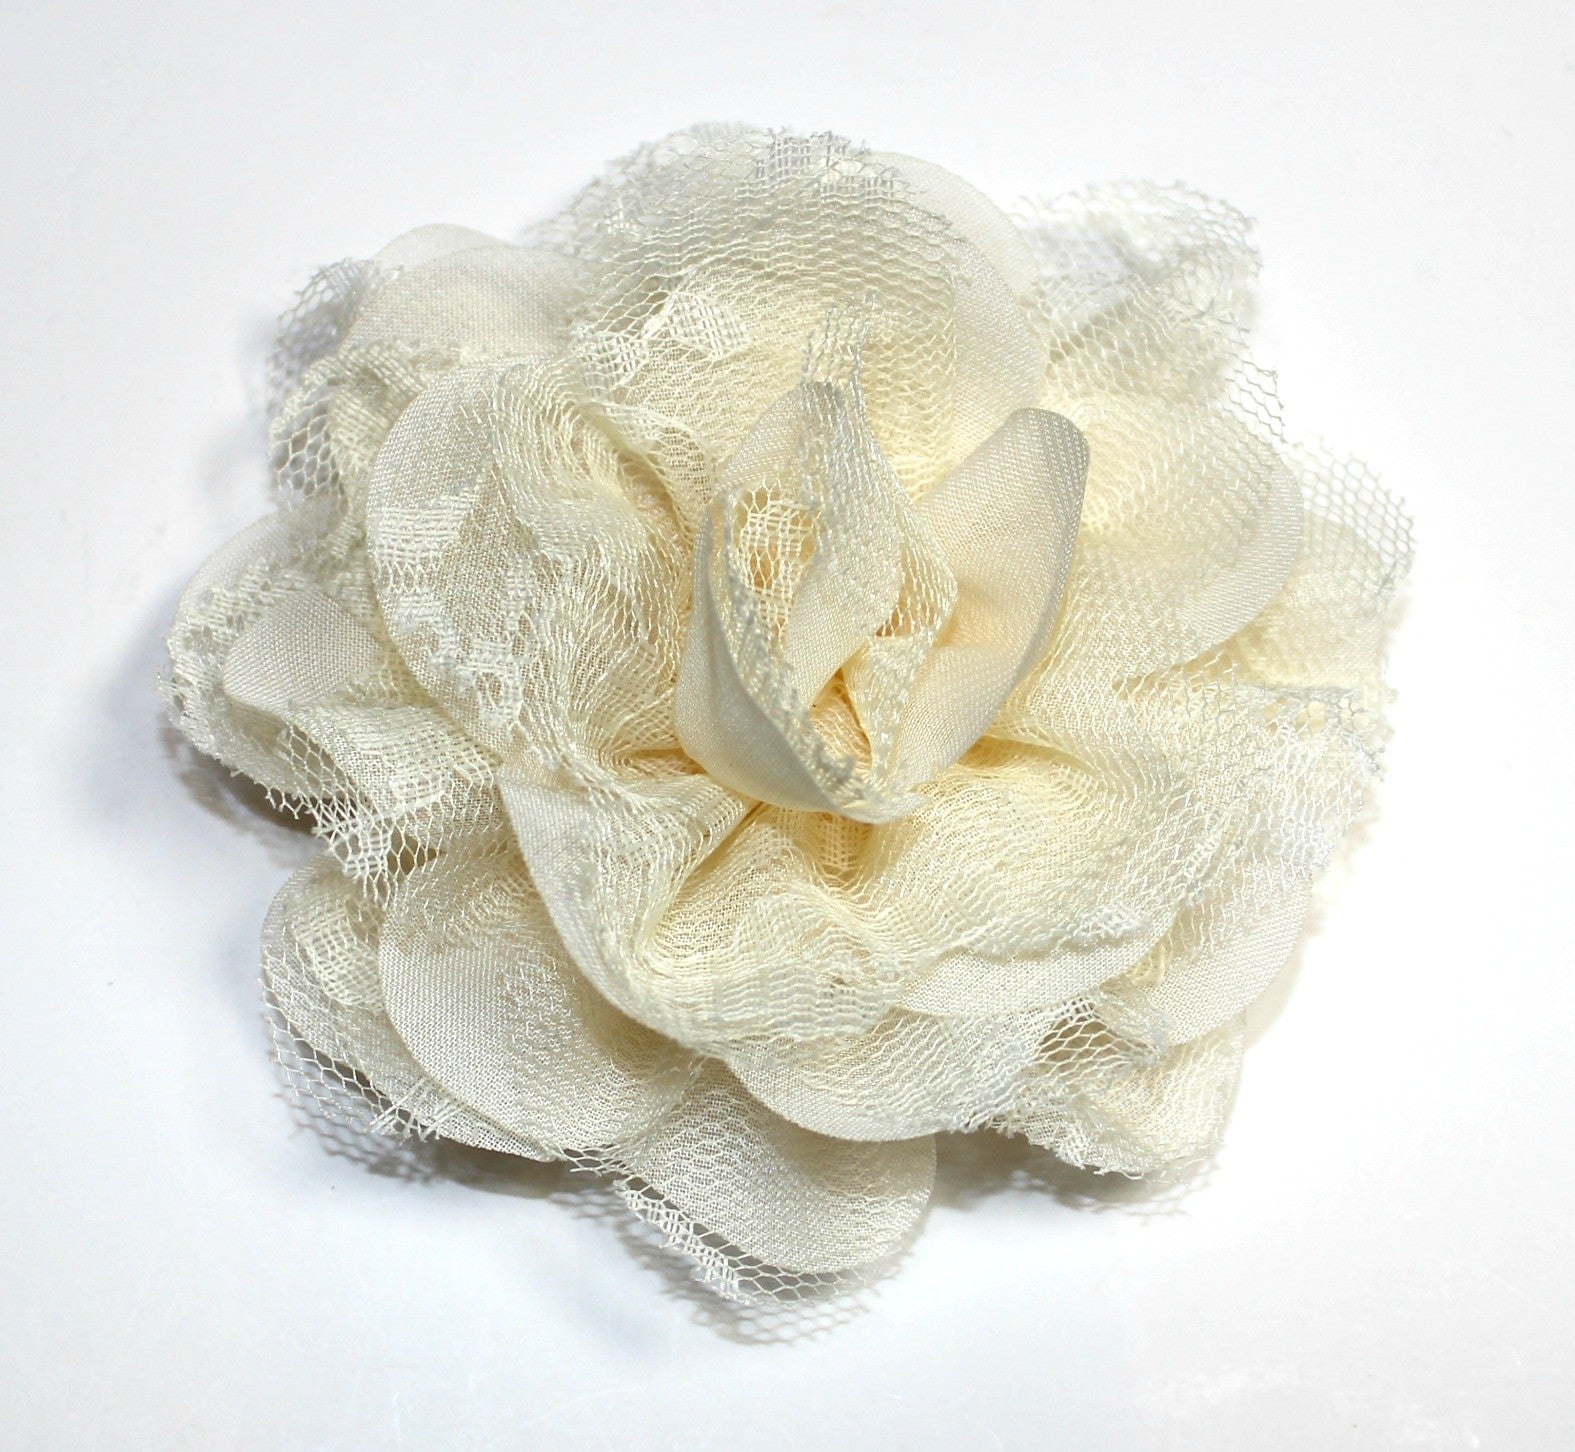 Chiffon and Lace Flower - Cream - shabbyflowers.com